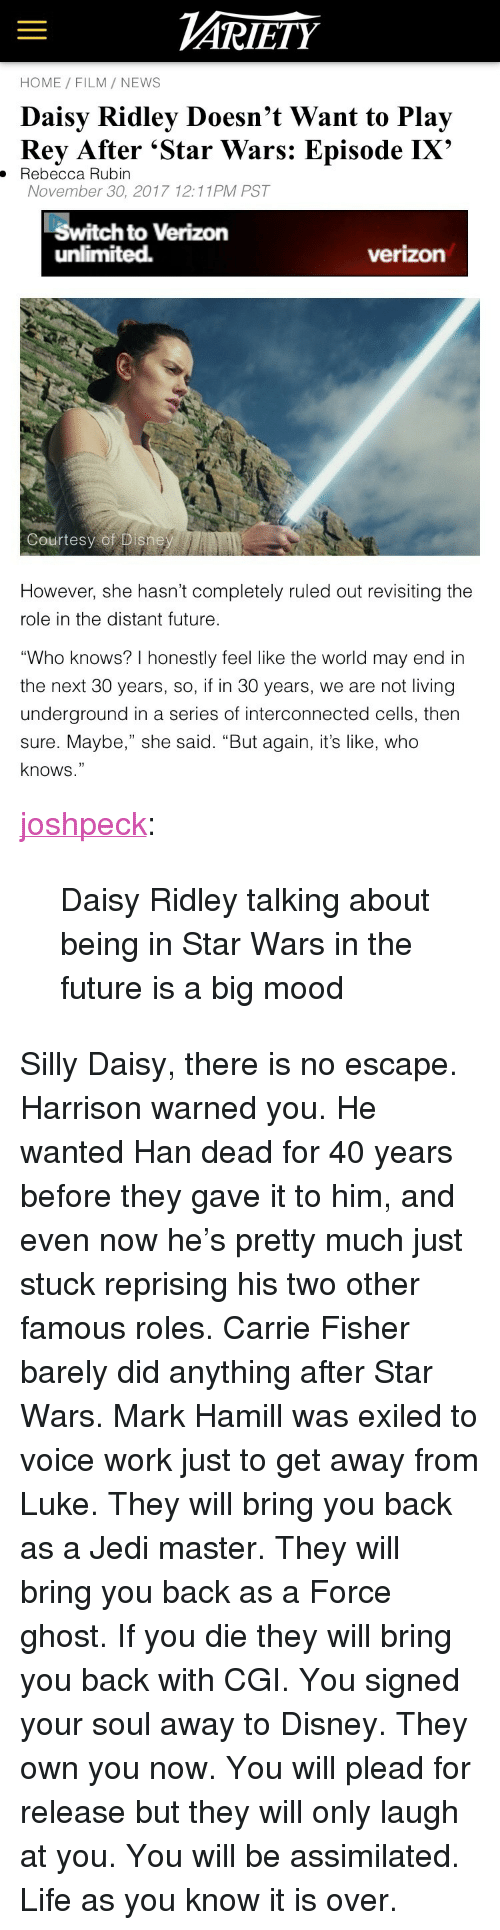 "Daisy Ridley: ARİETY  HOME FILM/ NEWS  Daisy Ridley Doesn't Want to Play  Rey After 'Star Wars: Episode IX'  . Rebecca Rubin  November 30, 2017 12:11PM PST  Switch to Verizon  unlimited.  verizon  Courtesy of Disne   However, she hasn't completely ruled out revisiting the  role in the distant future  ""Who knows? I honestly feel like the world may end in  the next 30 years, so, if in 30 years, we are not living  underground in a series of interconnected cells, then  sure. Maybe,"" she said. ""But again, it's like, who  knows."" <p><a href=""http://joshpeckofficial.com/post/168948838043/daisy-ridley-talking-about-being-in-star-wars-in"" class=""tumblr_blog"">joshpeck</a>:</p>  <blockquote><p>Daisy Ridley talking about being in Star Wars in the future is a big mood</p></blockquote>  <p>Silly Daisy, there is no escape. Harrison warned you. He wanted Han dead for 40 years before they gave it to him, and even now he's pretty much just stuck reprising his two other famous roles. Carrie Fisher barely did anything after Star Wars. Mark Hamill was exiled to voice work just to get away from Luke. They will bring you back as a Jedi master. They will bring you back as a Force ghost. If you die they will bring you back with CGI. You signed your soul away to Disney. They own you now. You will plead for release but they will only laugh at you. You will be assimilated. Life as you know it is over.</p>"